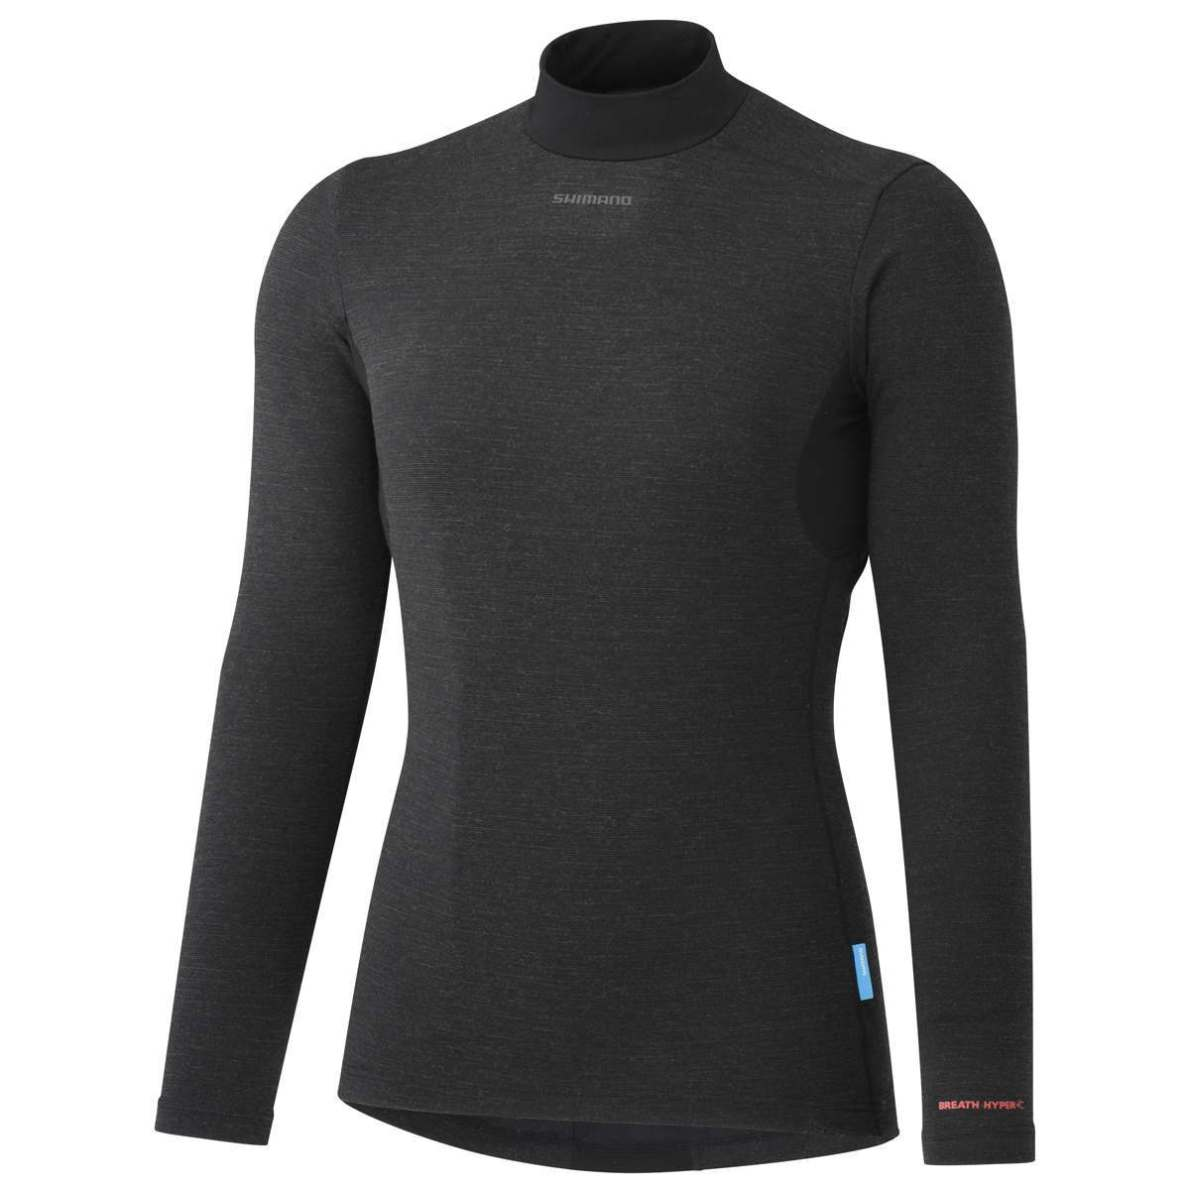 Shimano Breath Hyper Baselayer